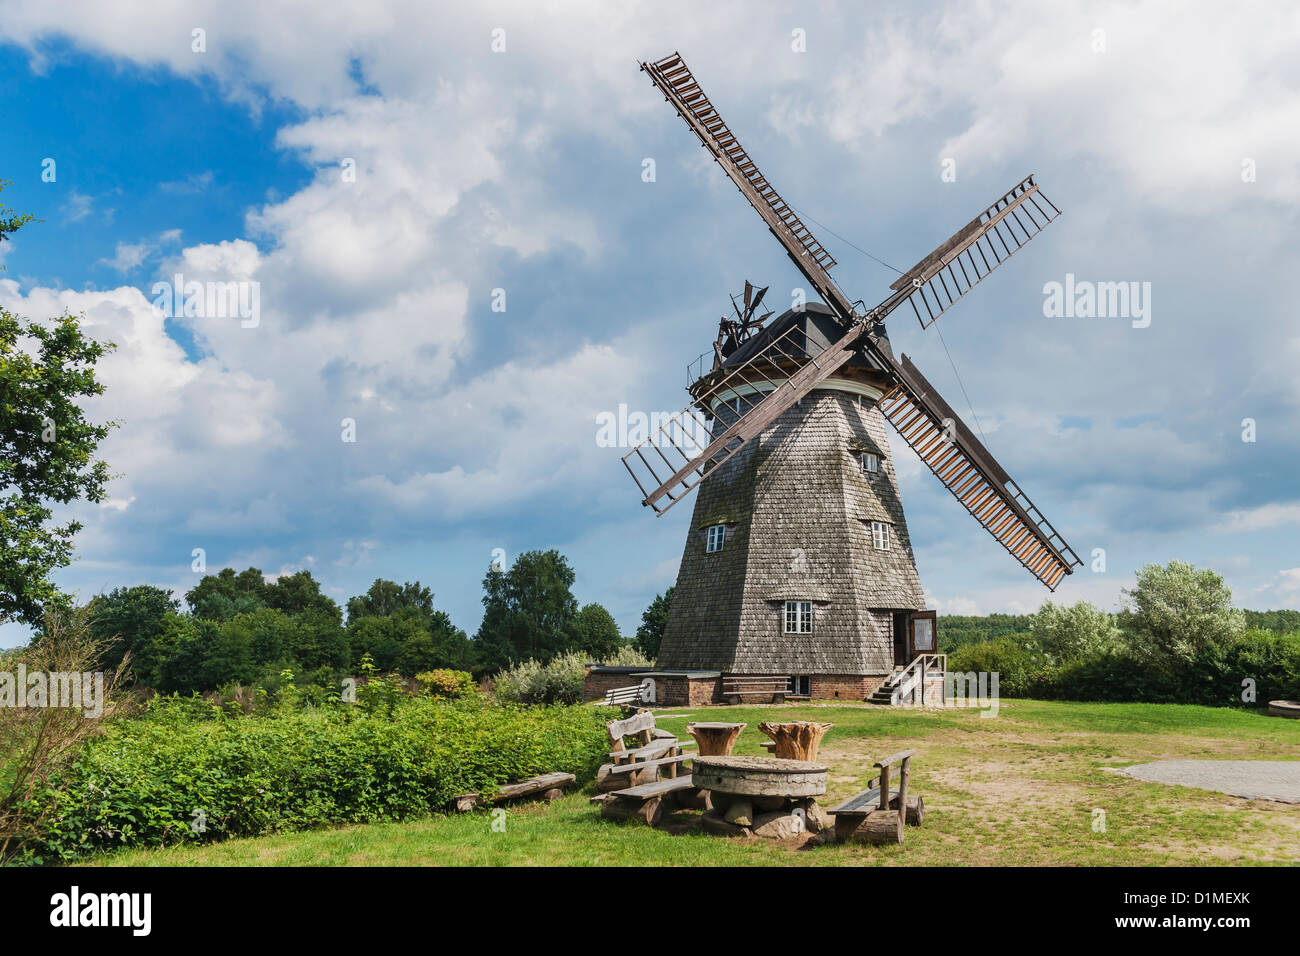 Dutch windmill from the 19th Century, Benz, Usedom Island, Vorpommern-Greifswald, Mecklenburg-Western Pomerania, - Stock Image